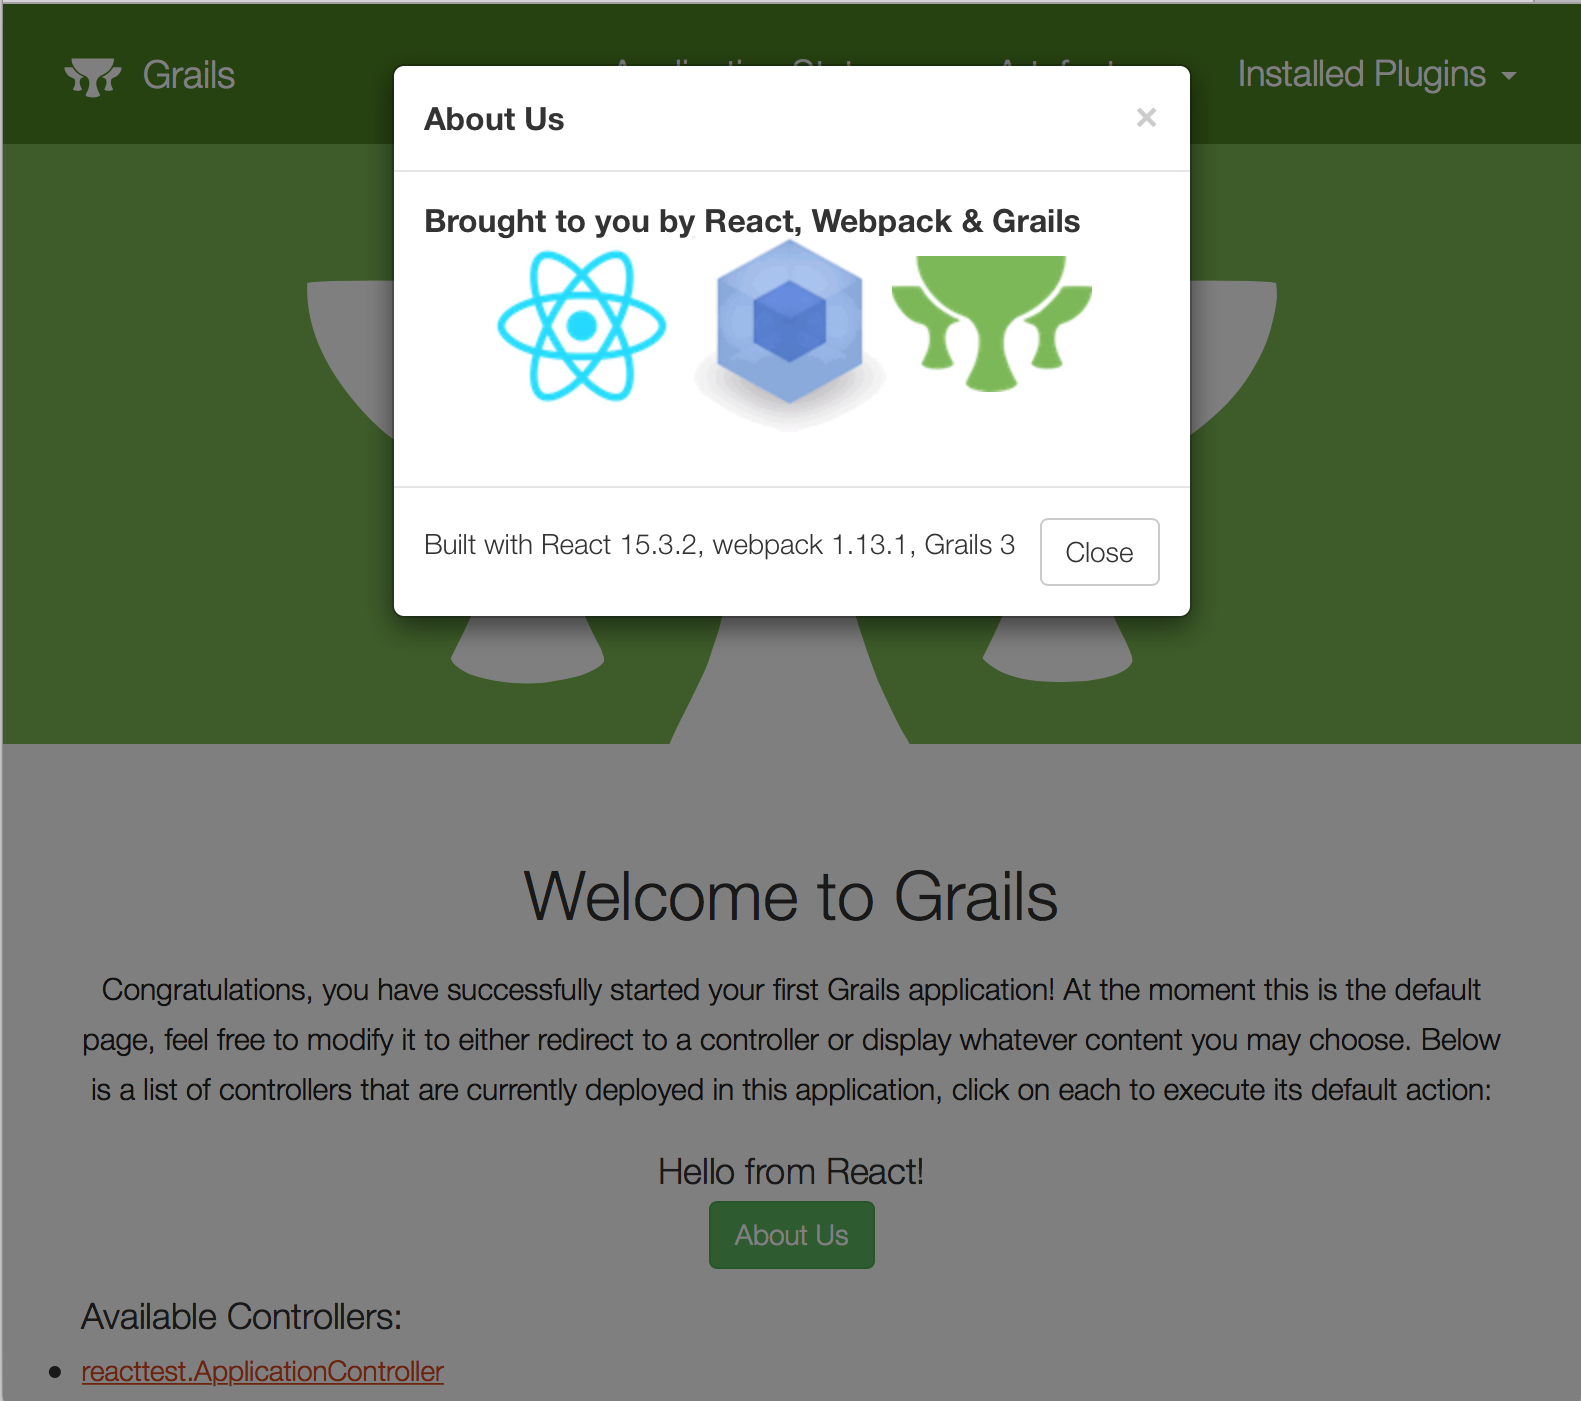 Introducing the React Profile for Grails | OCI Grails Team Blog